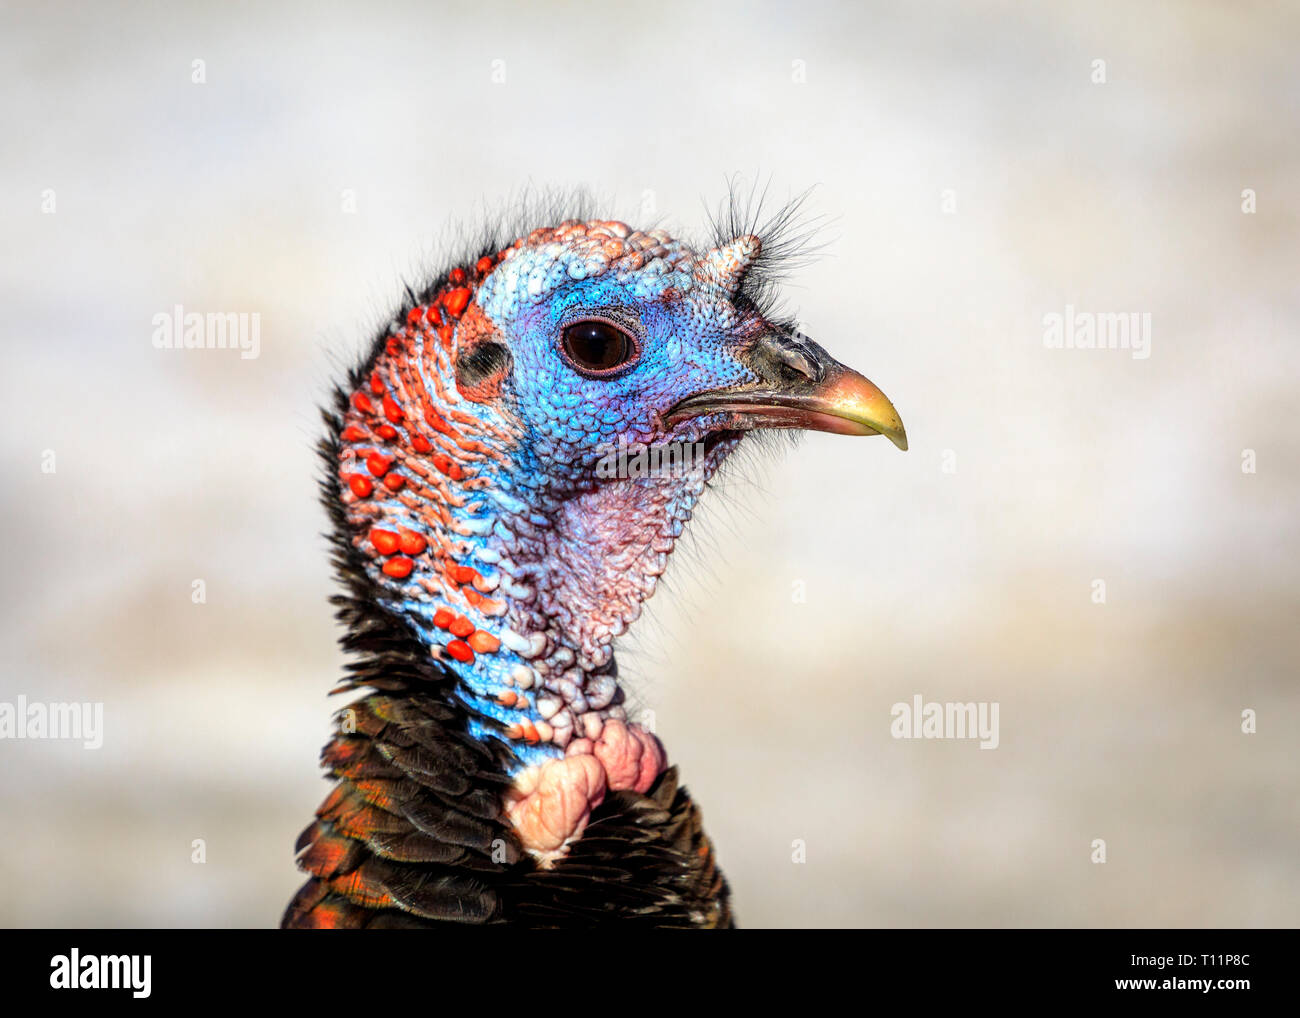 Wild Turkey, hen, close up, Manitoba, Canada. - Stock Image